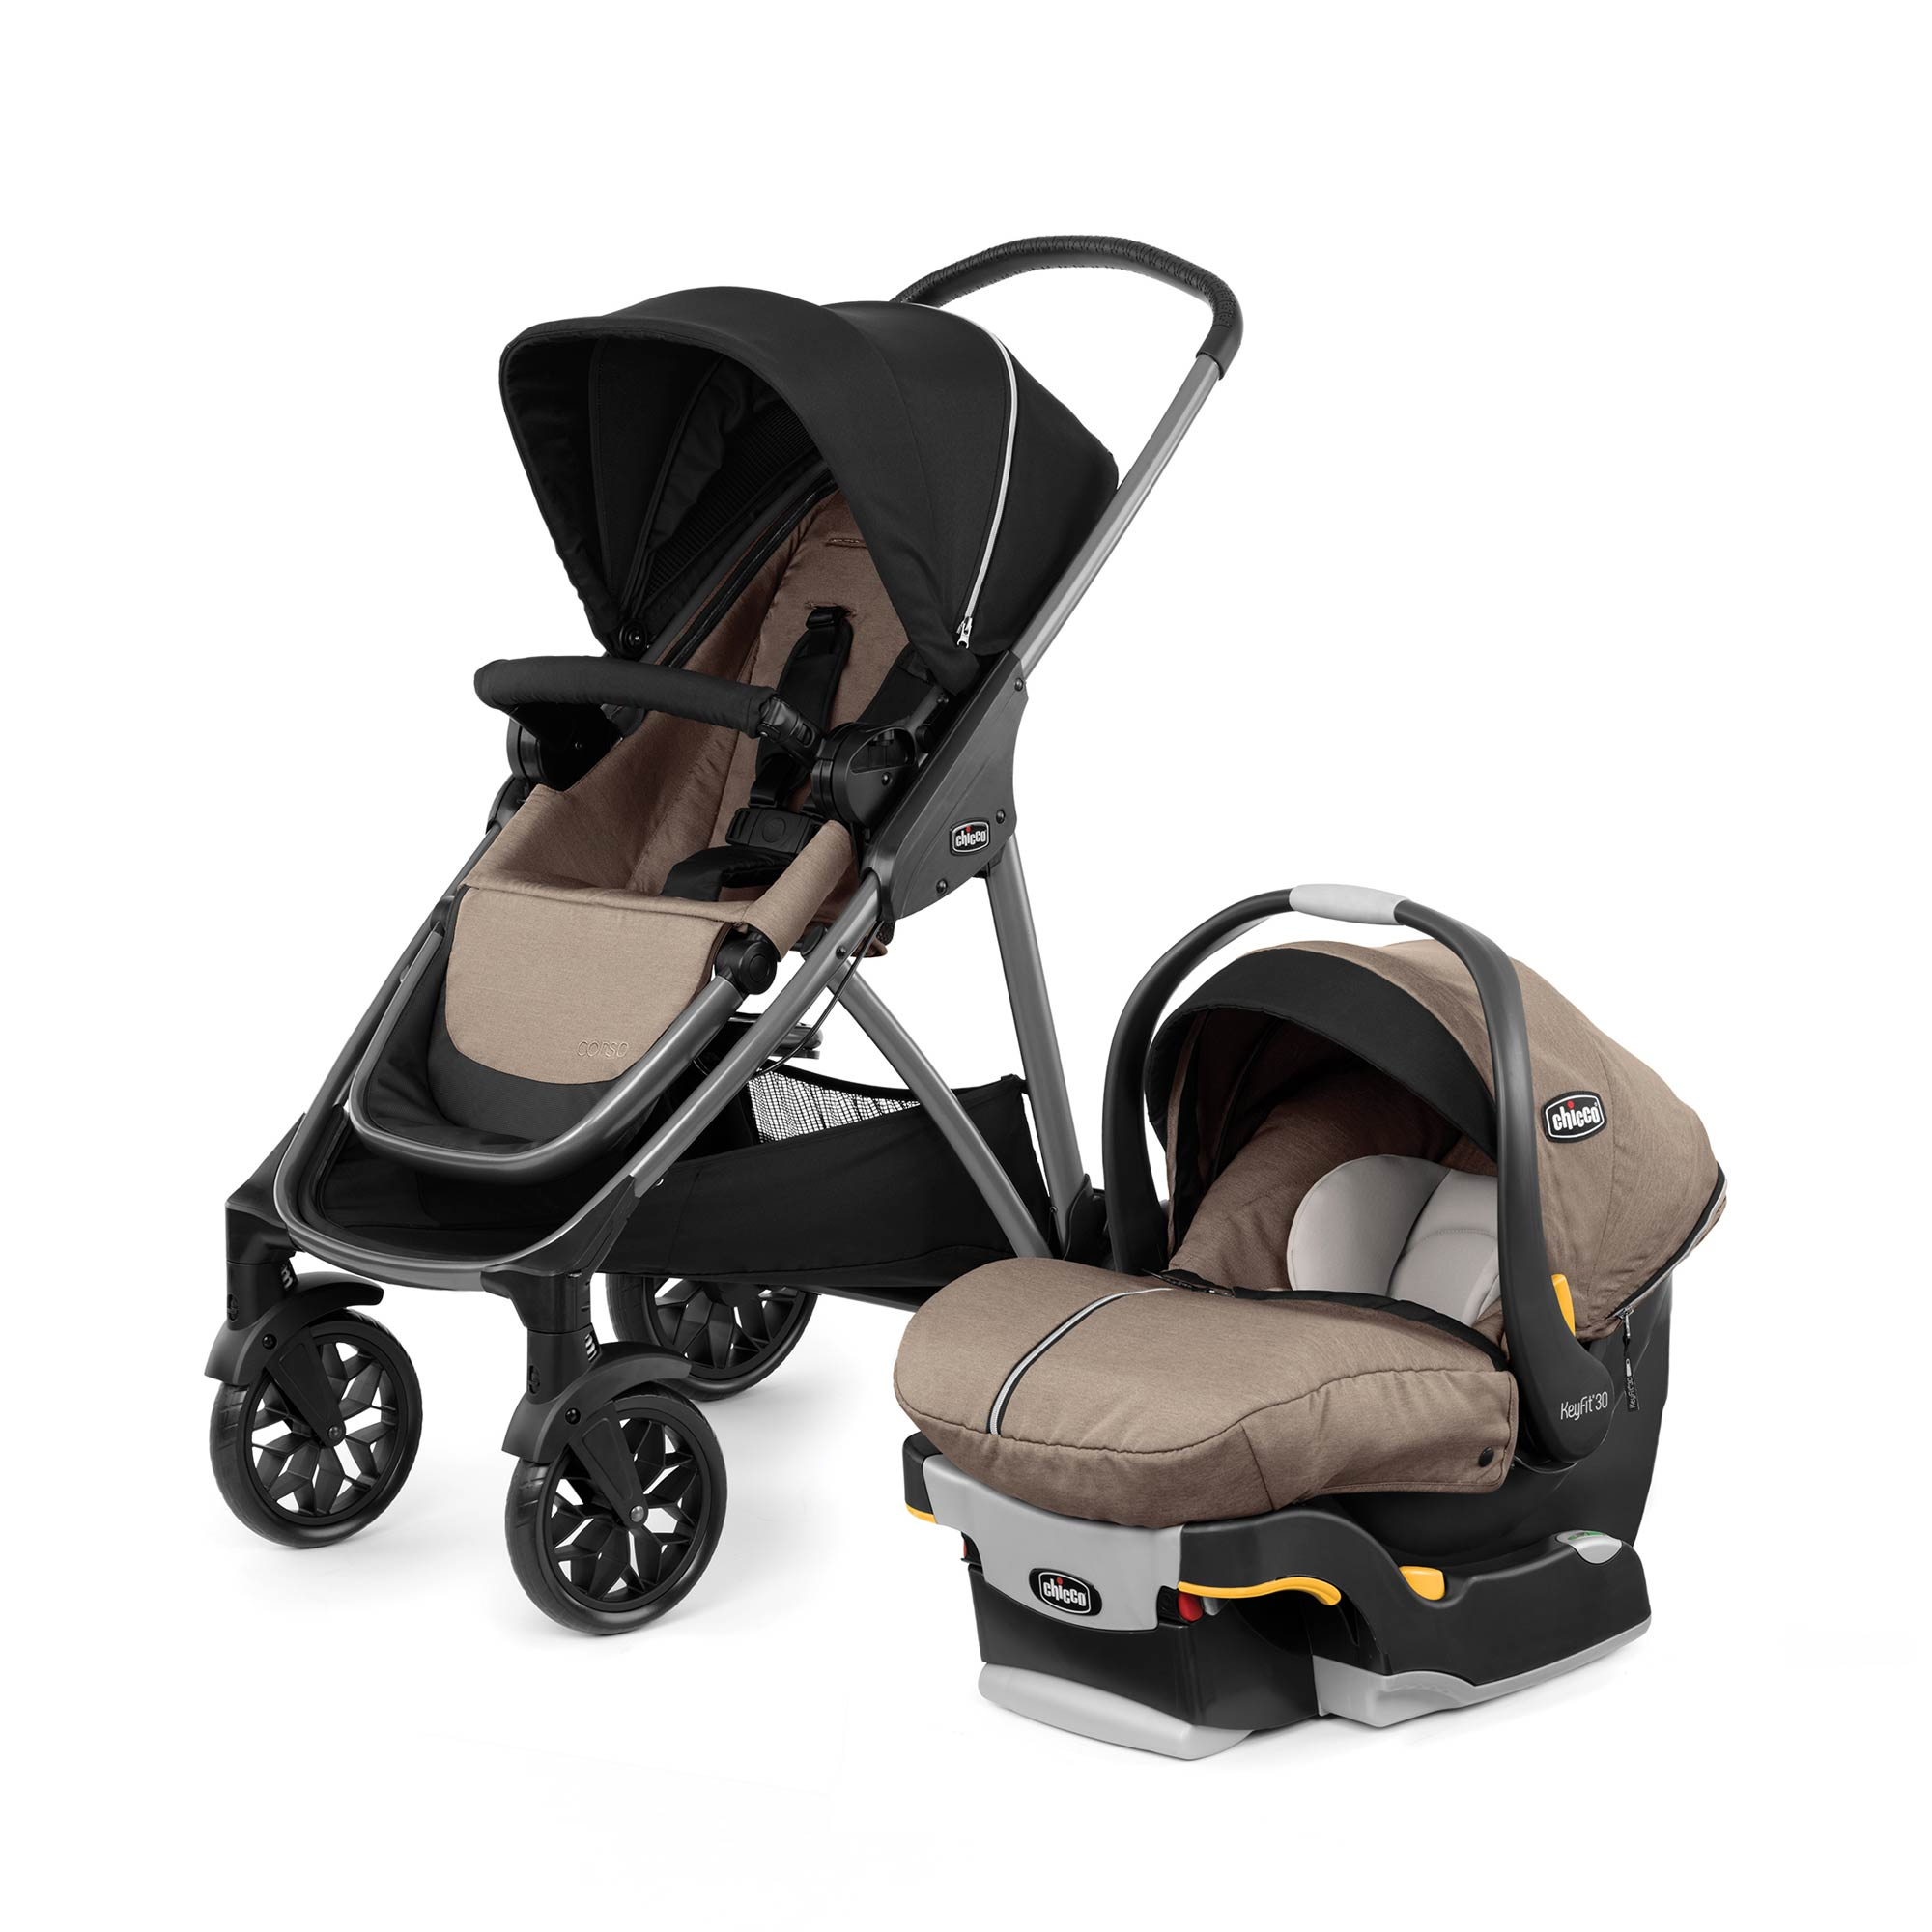 Corso Modular Travel System in Hazelwood Fashion | Chicco